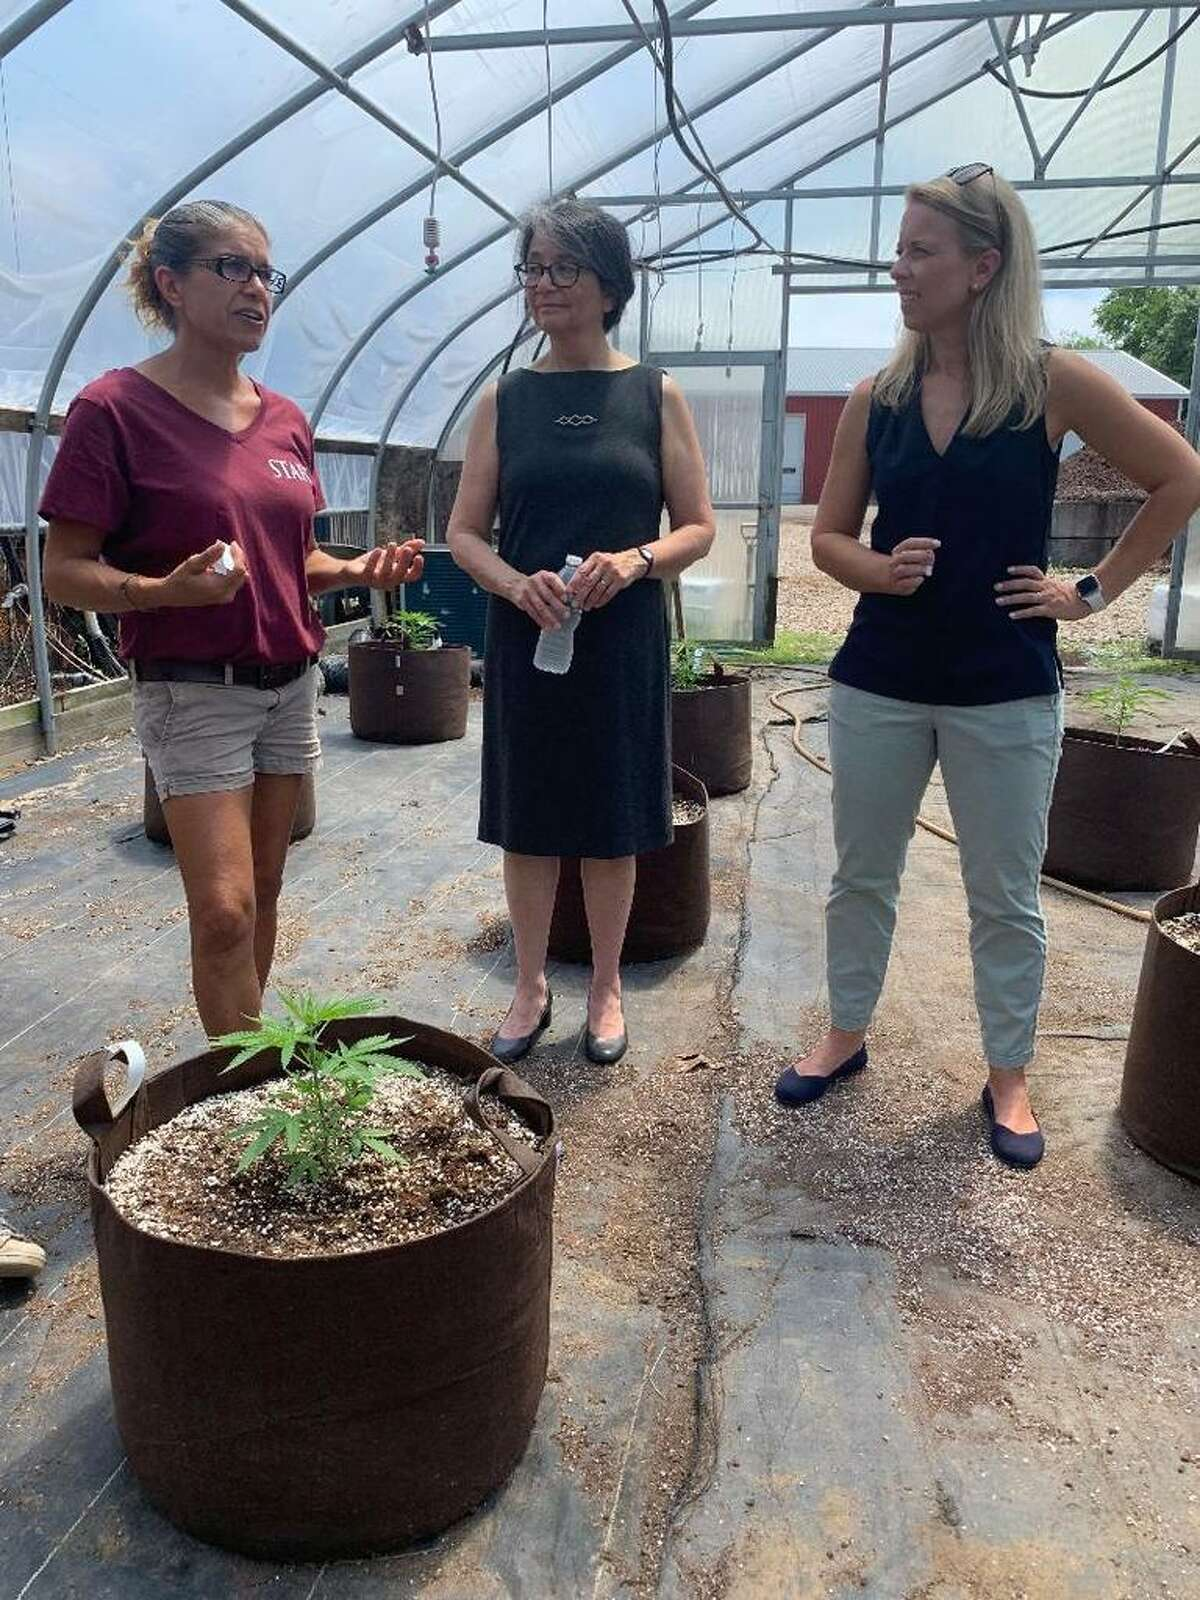 Hemp farming at Killingworth's Running Brook Farms is underway as (l-r) Site Manager Becky Goetsch explains to Killingworth First Selectman Catherine Iino and Sen. Christine Cohen, D-Guilford.